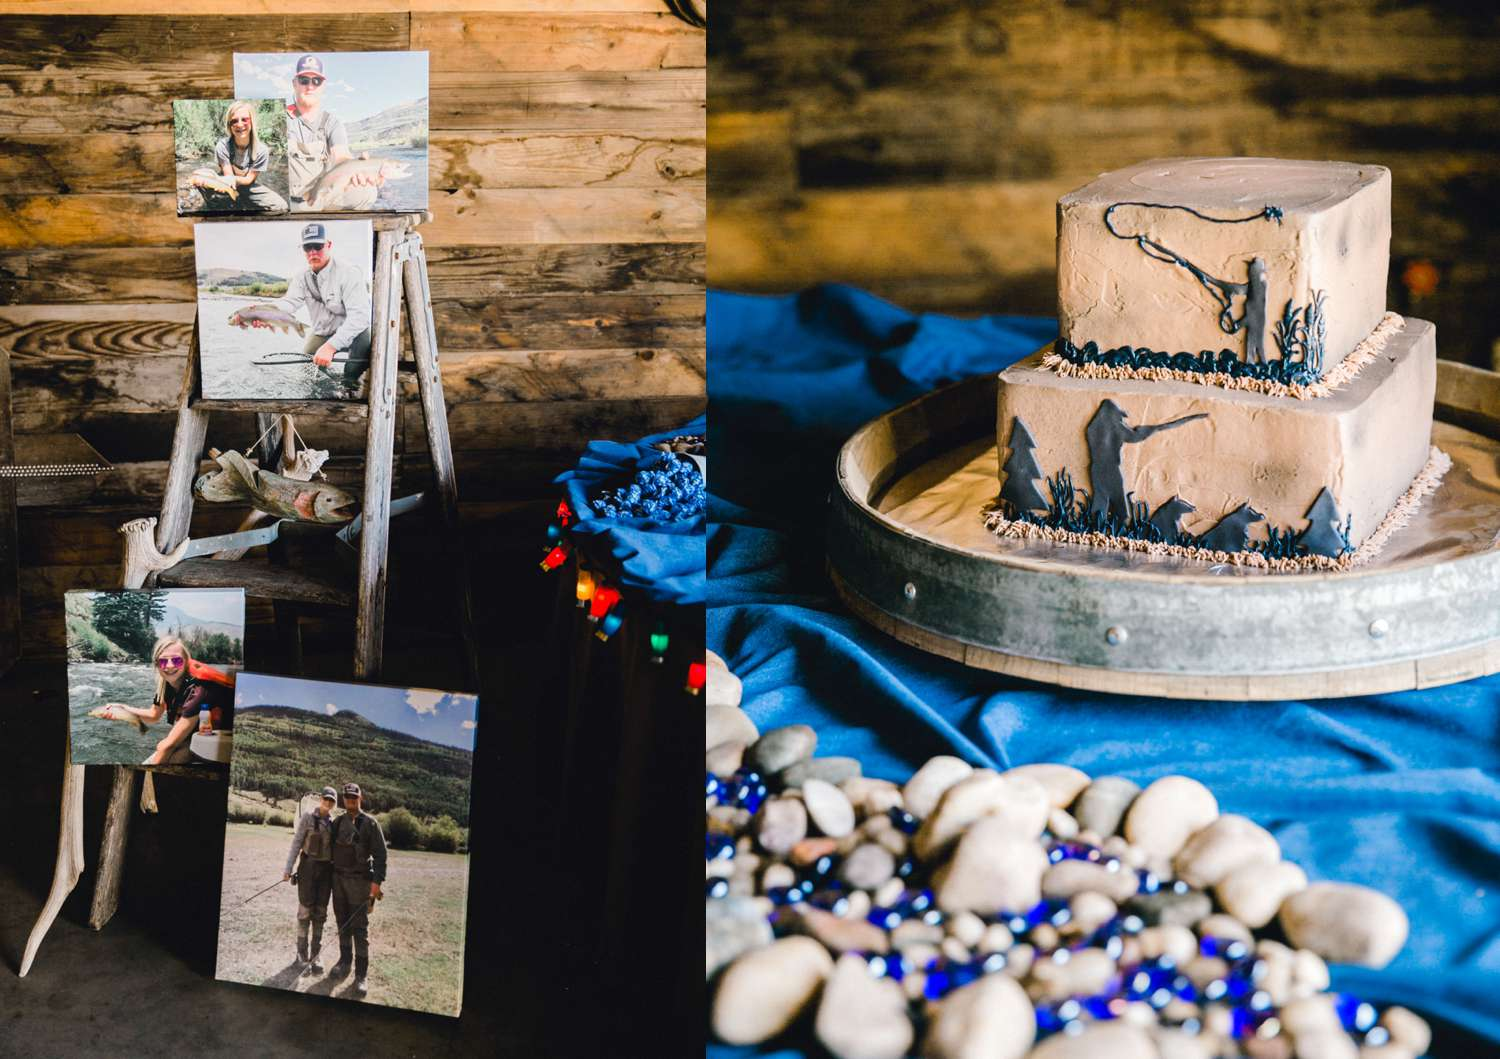 SARAH+TREVOR+BADGETT+SPARROW+CREEK+GRAHAM+TEXAS+ALLEEJ+WEDDINGS_0133.jpg